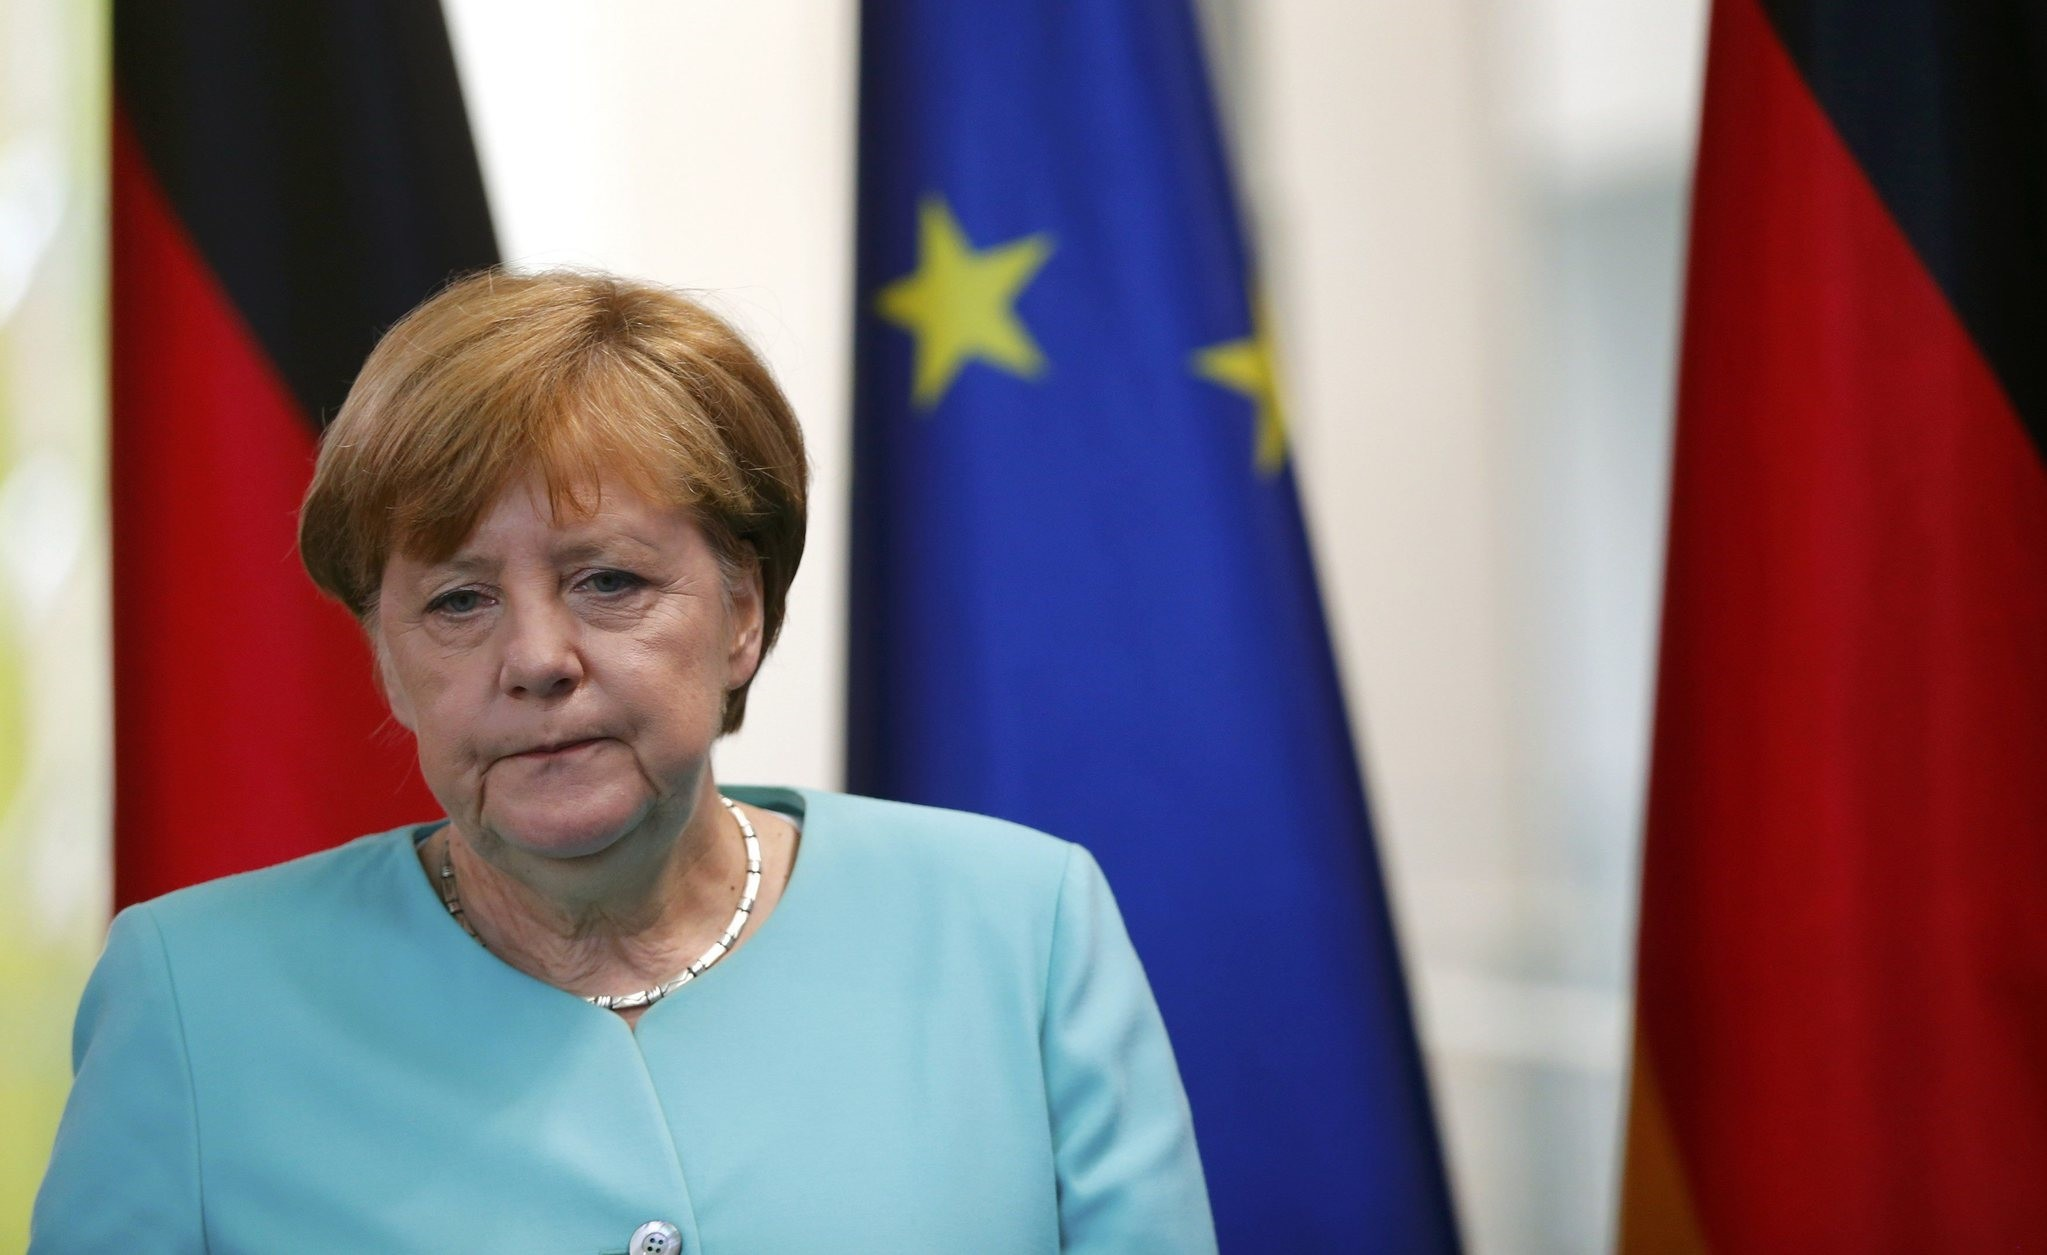 German Chancellor Angela Merkel arrives for a statement in Berlin, Germany, June 24, 2016, after Britain voted to leave the European Union in the EU BREXIT referendum. (REUTERS Photo)